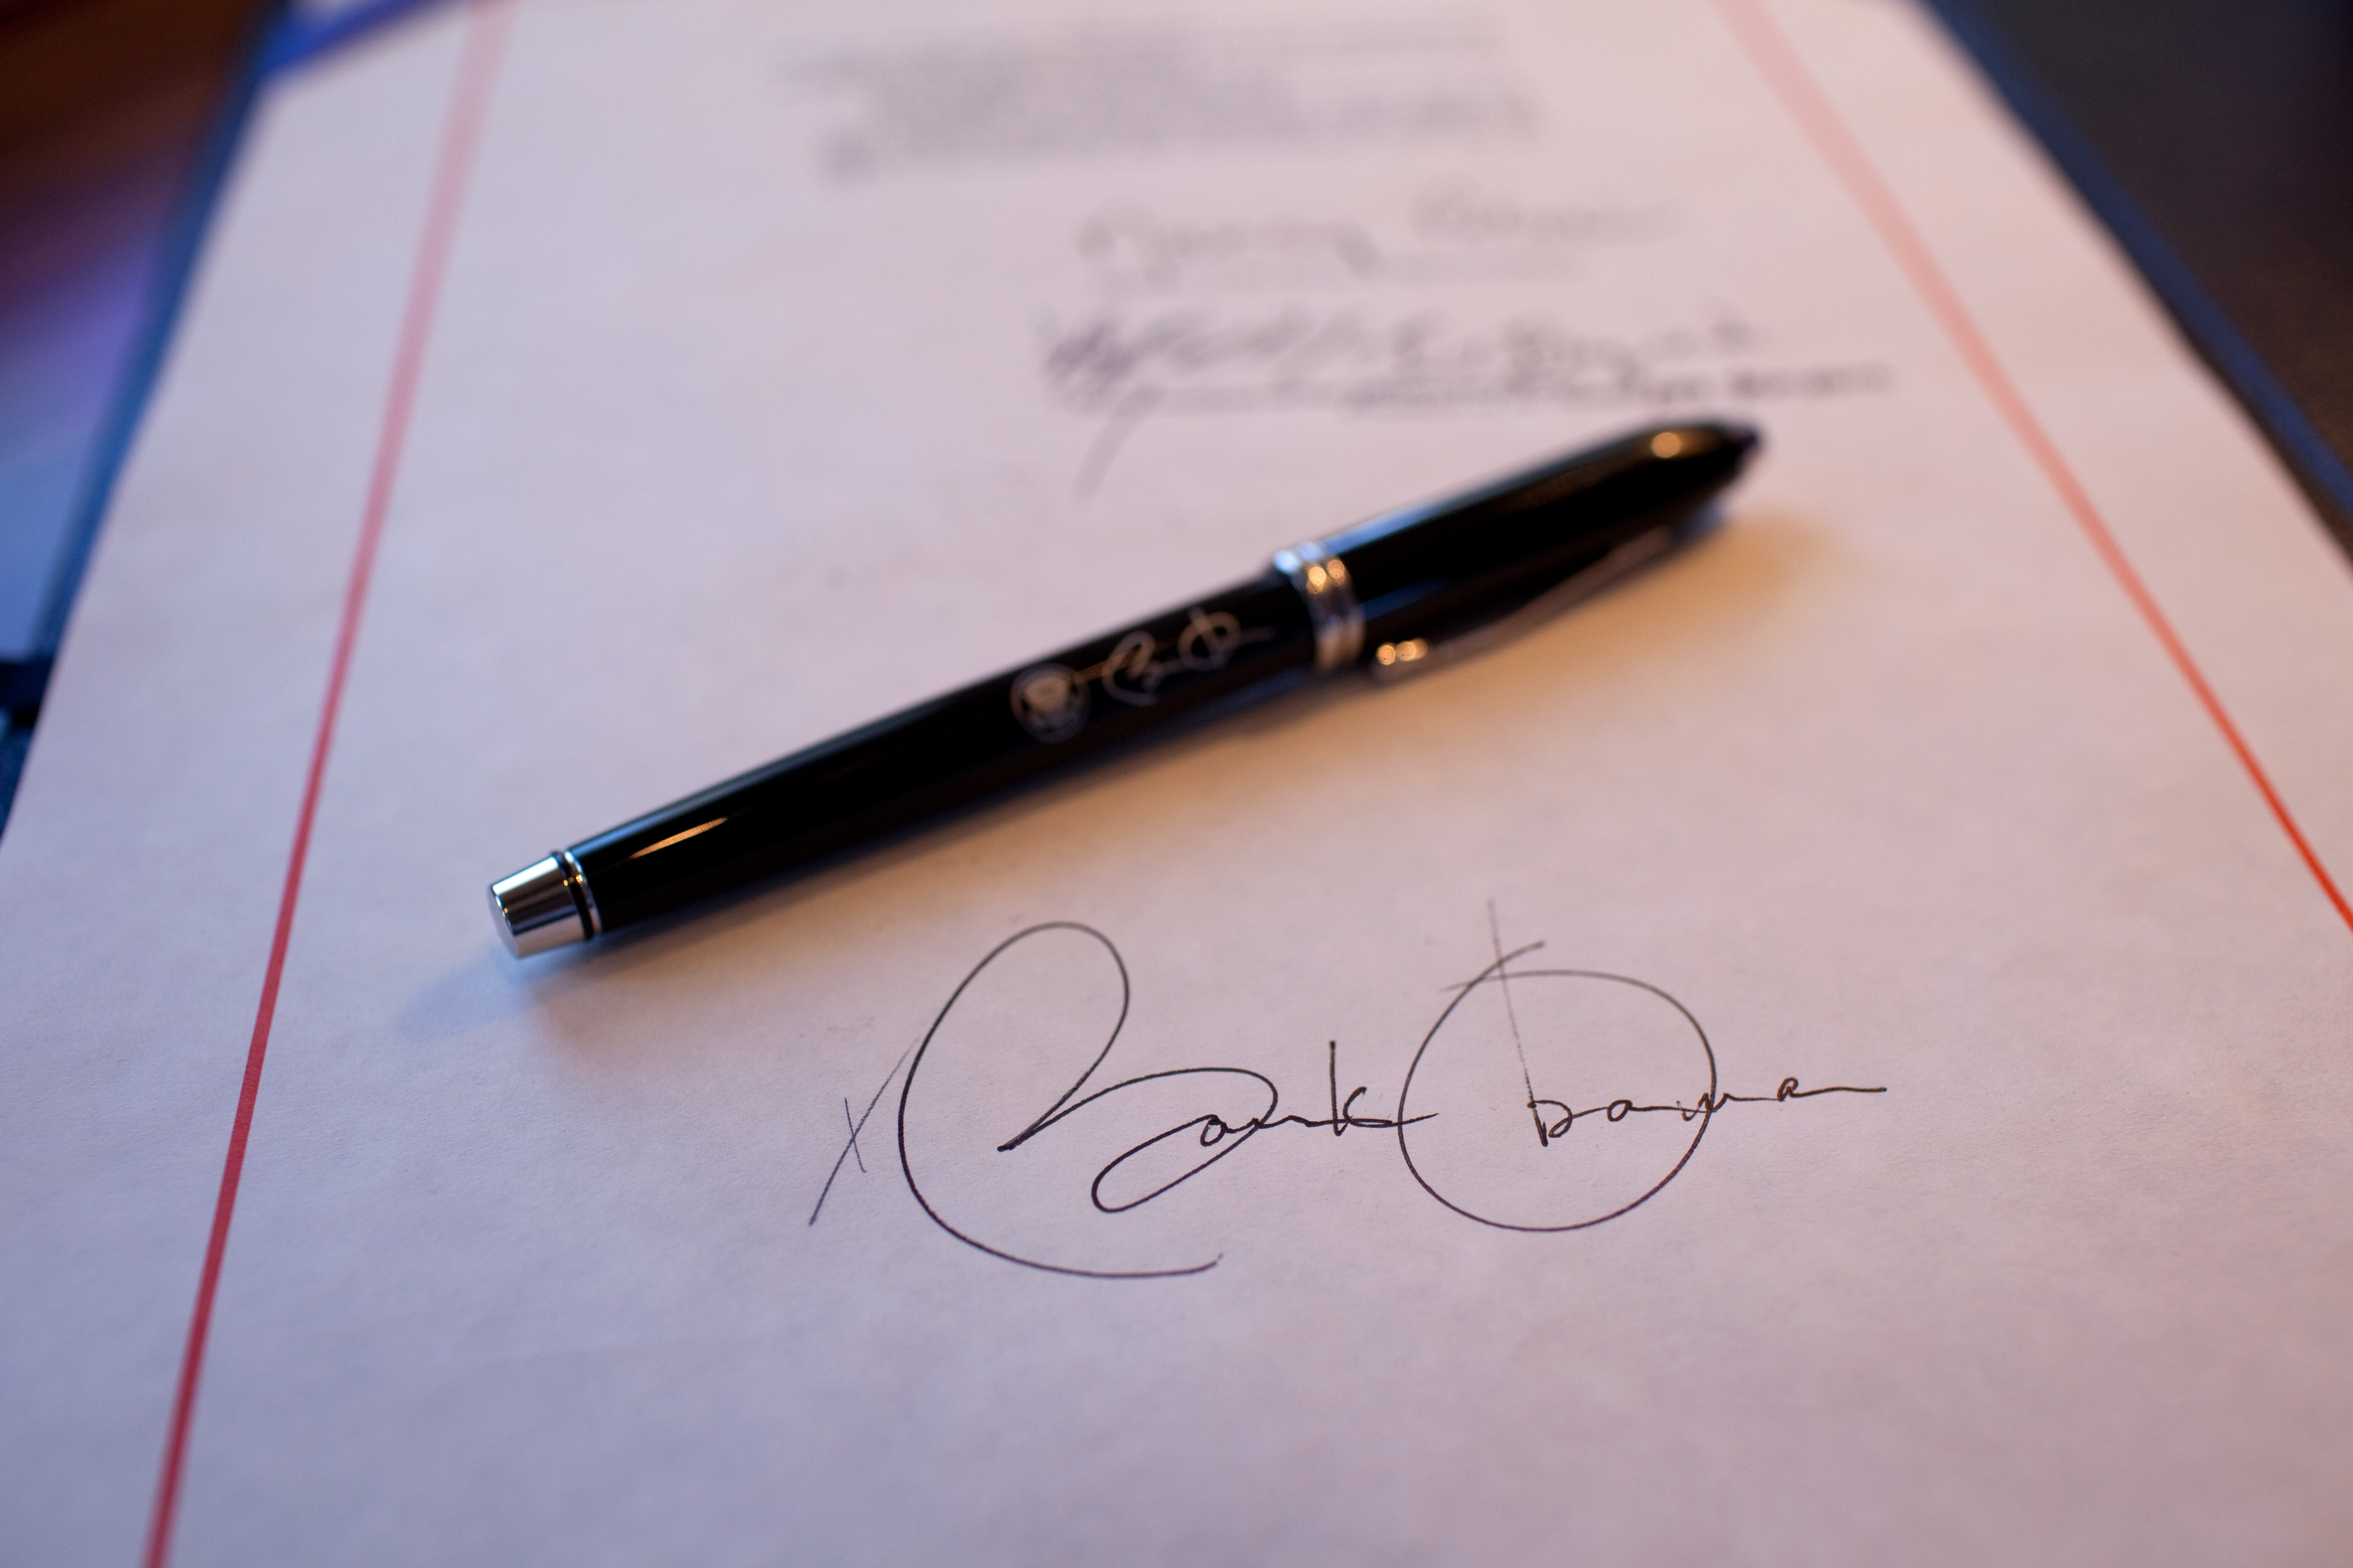 President Barack Obama's signature on a bill